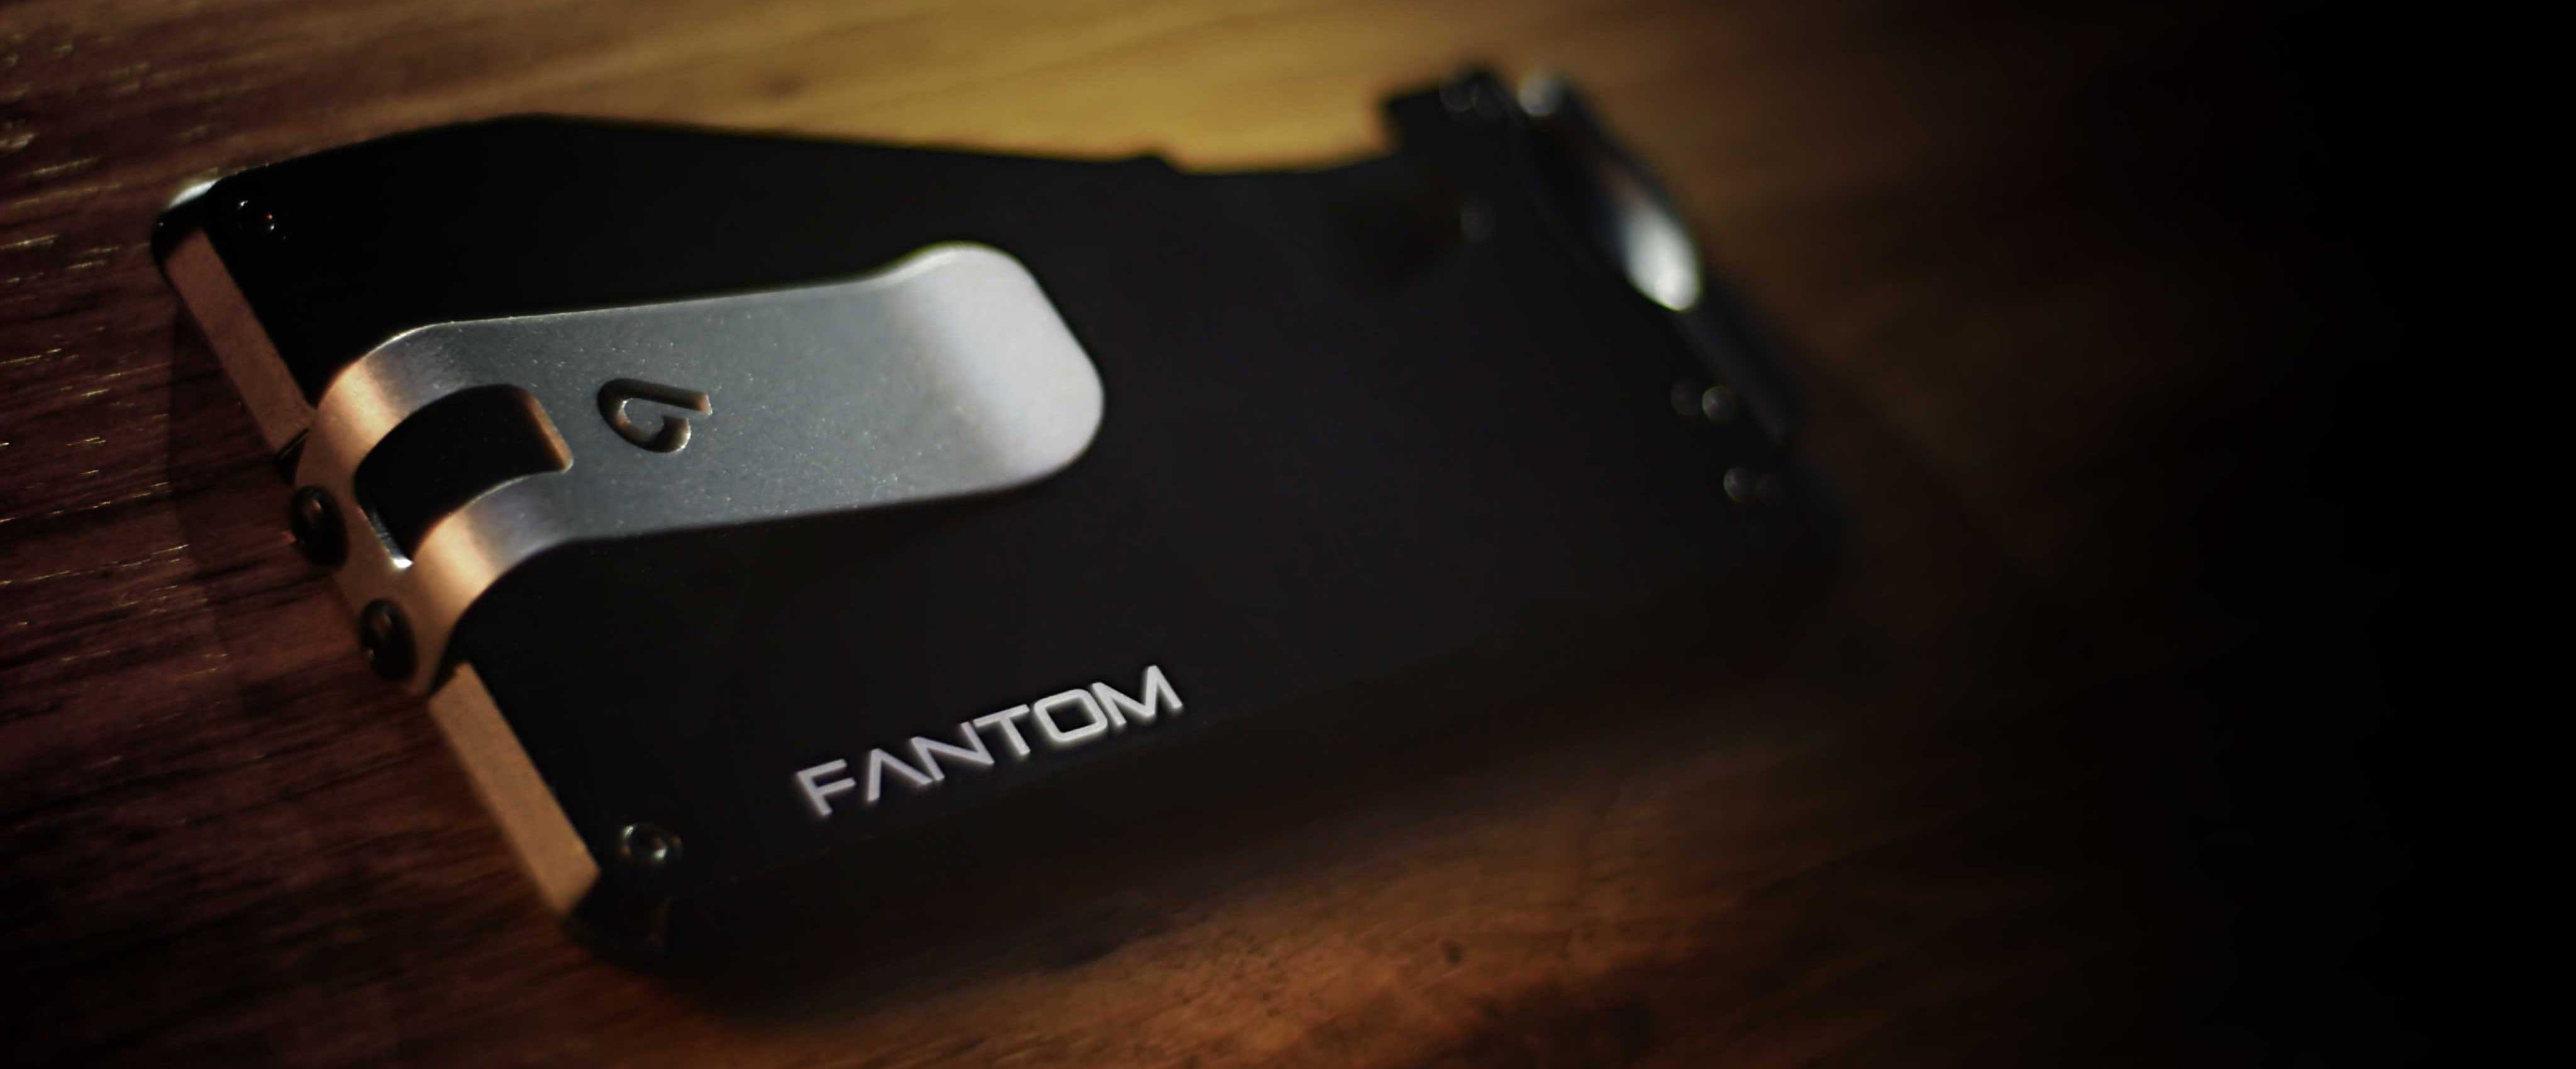 fantom-review